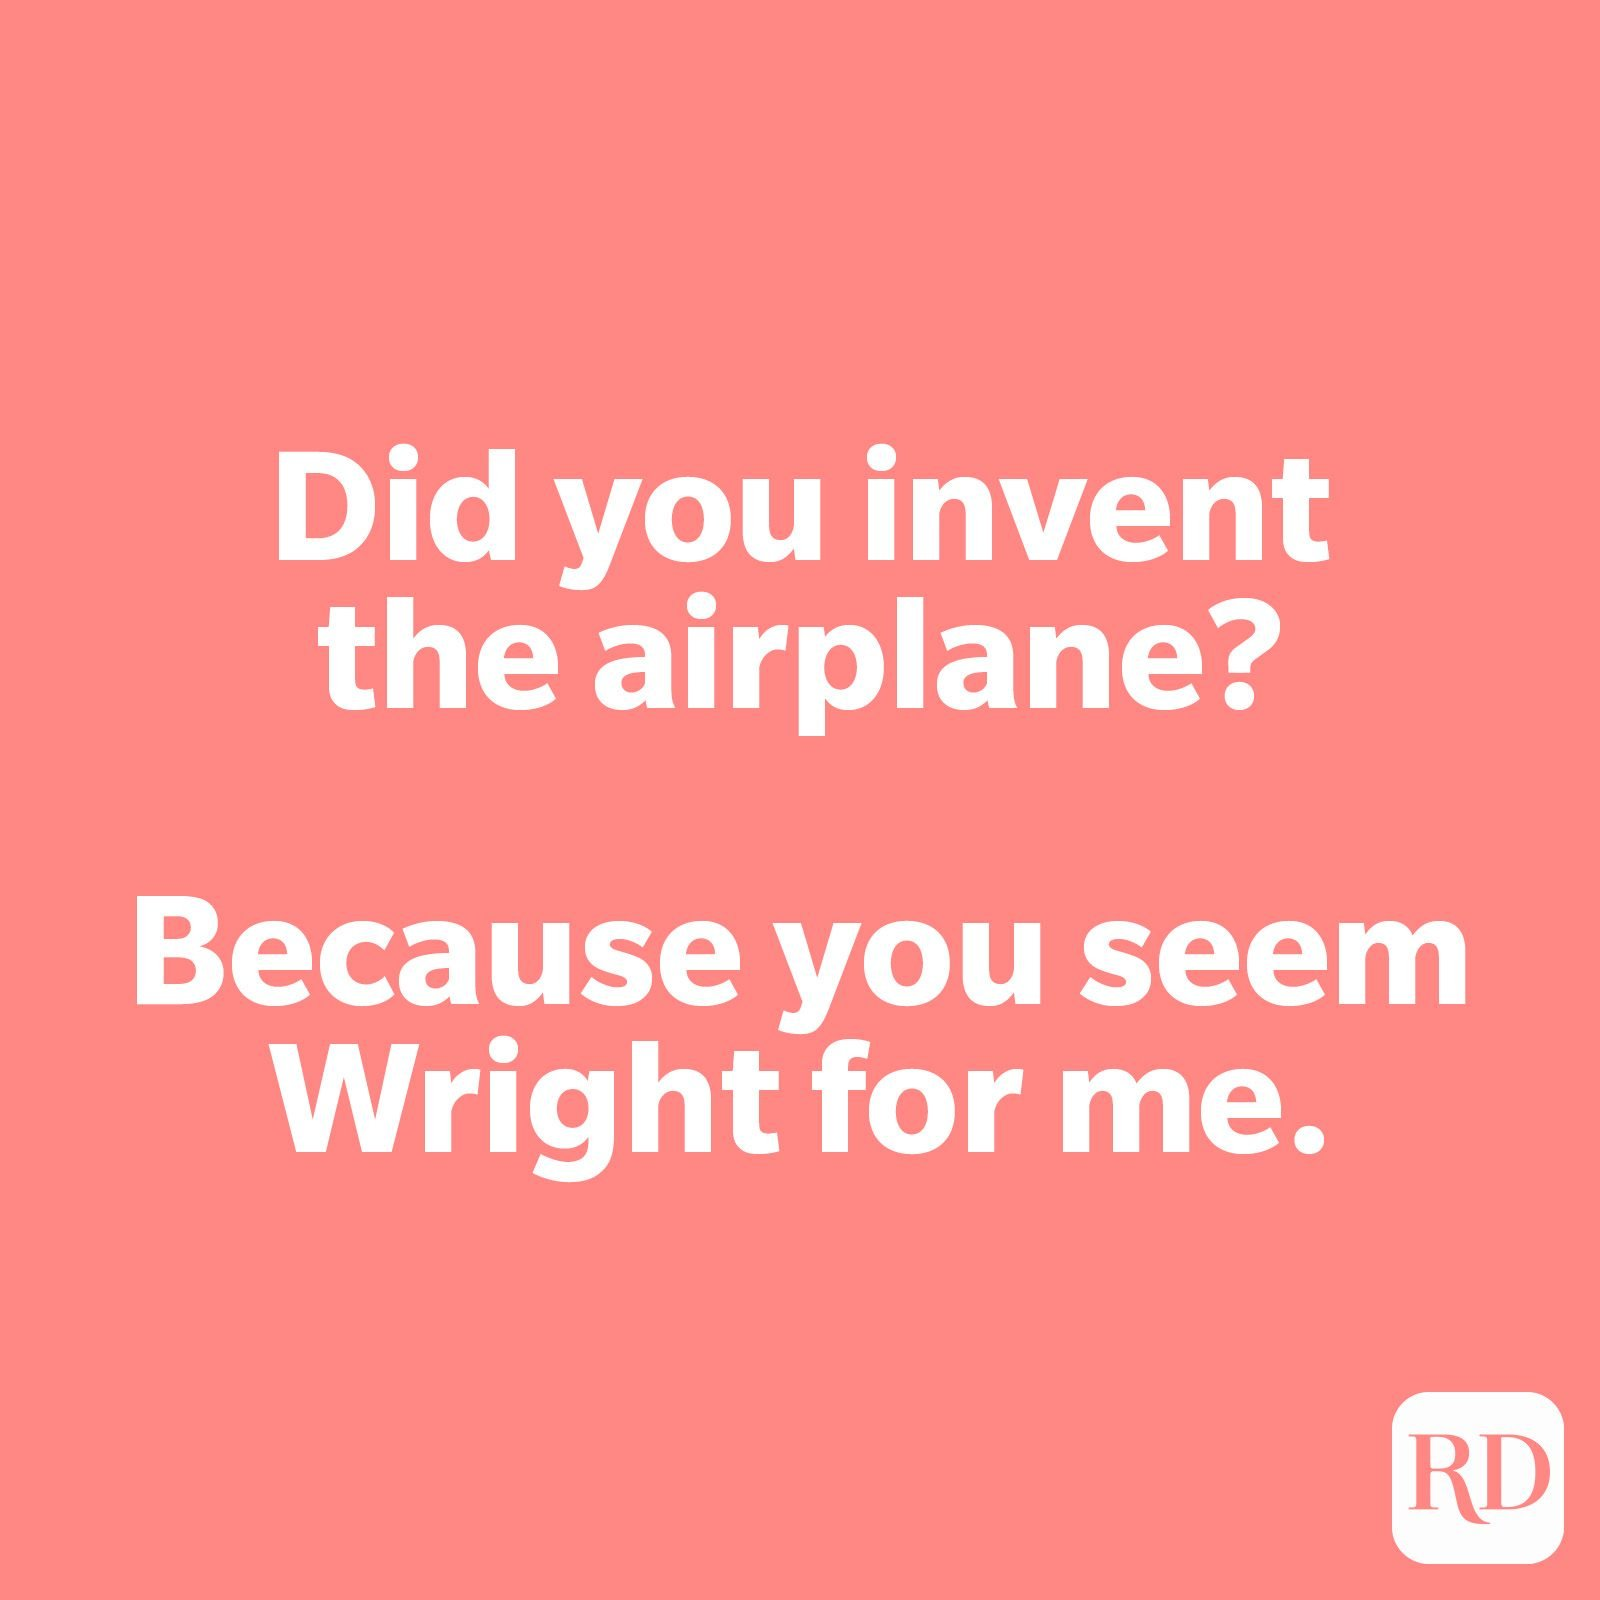 Did you invent the airplane? Because you seem Wright for me.